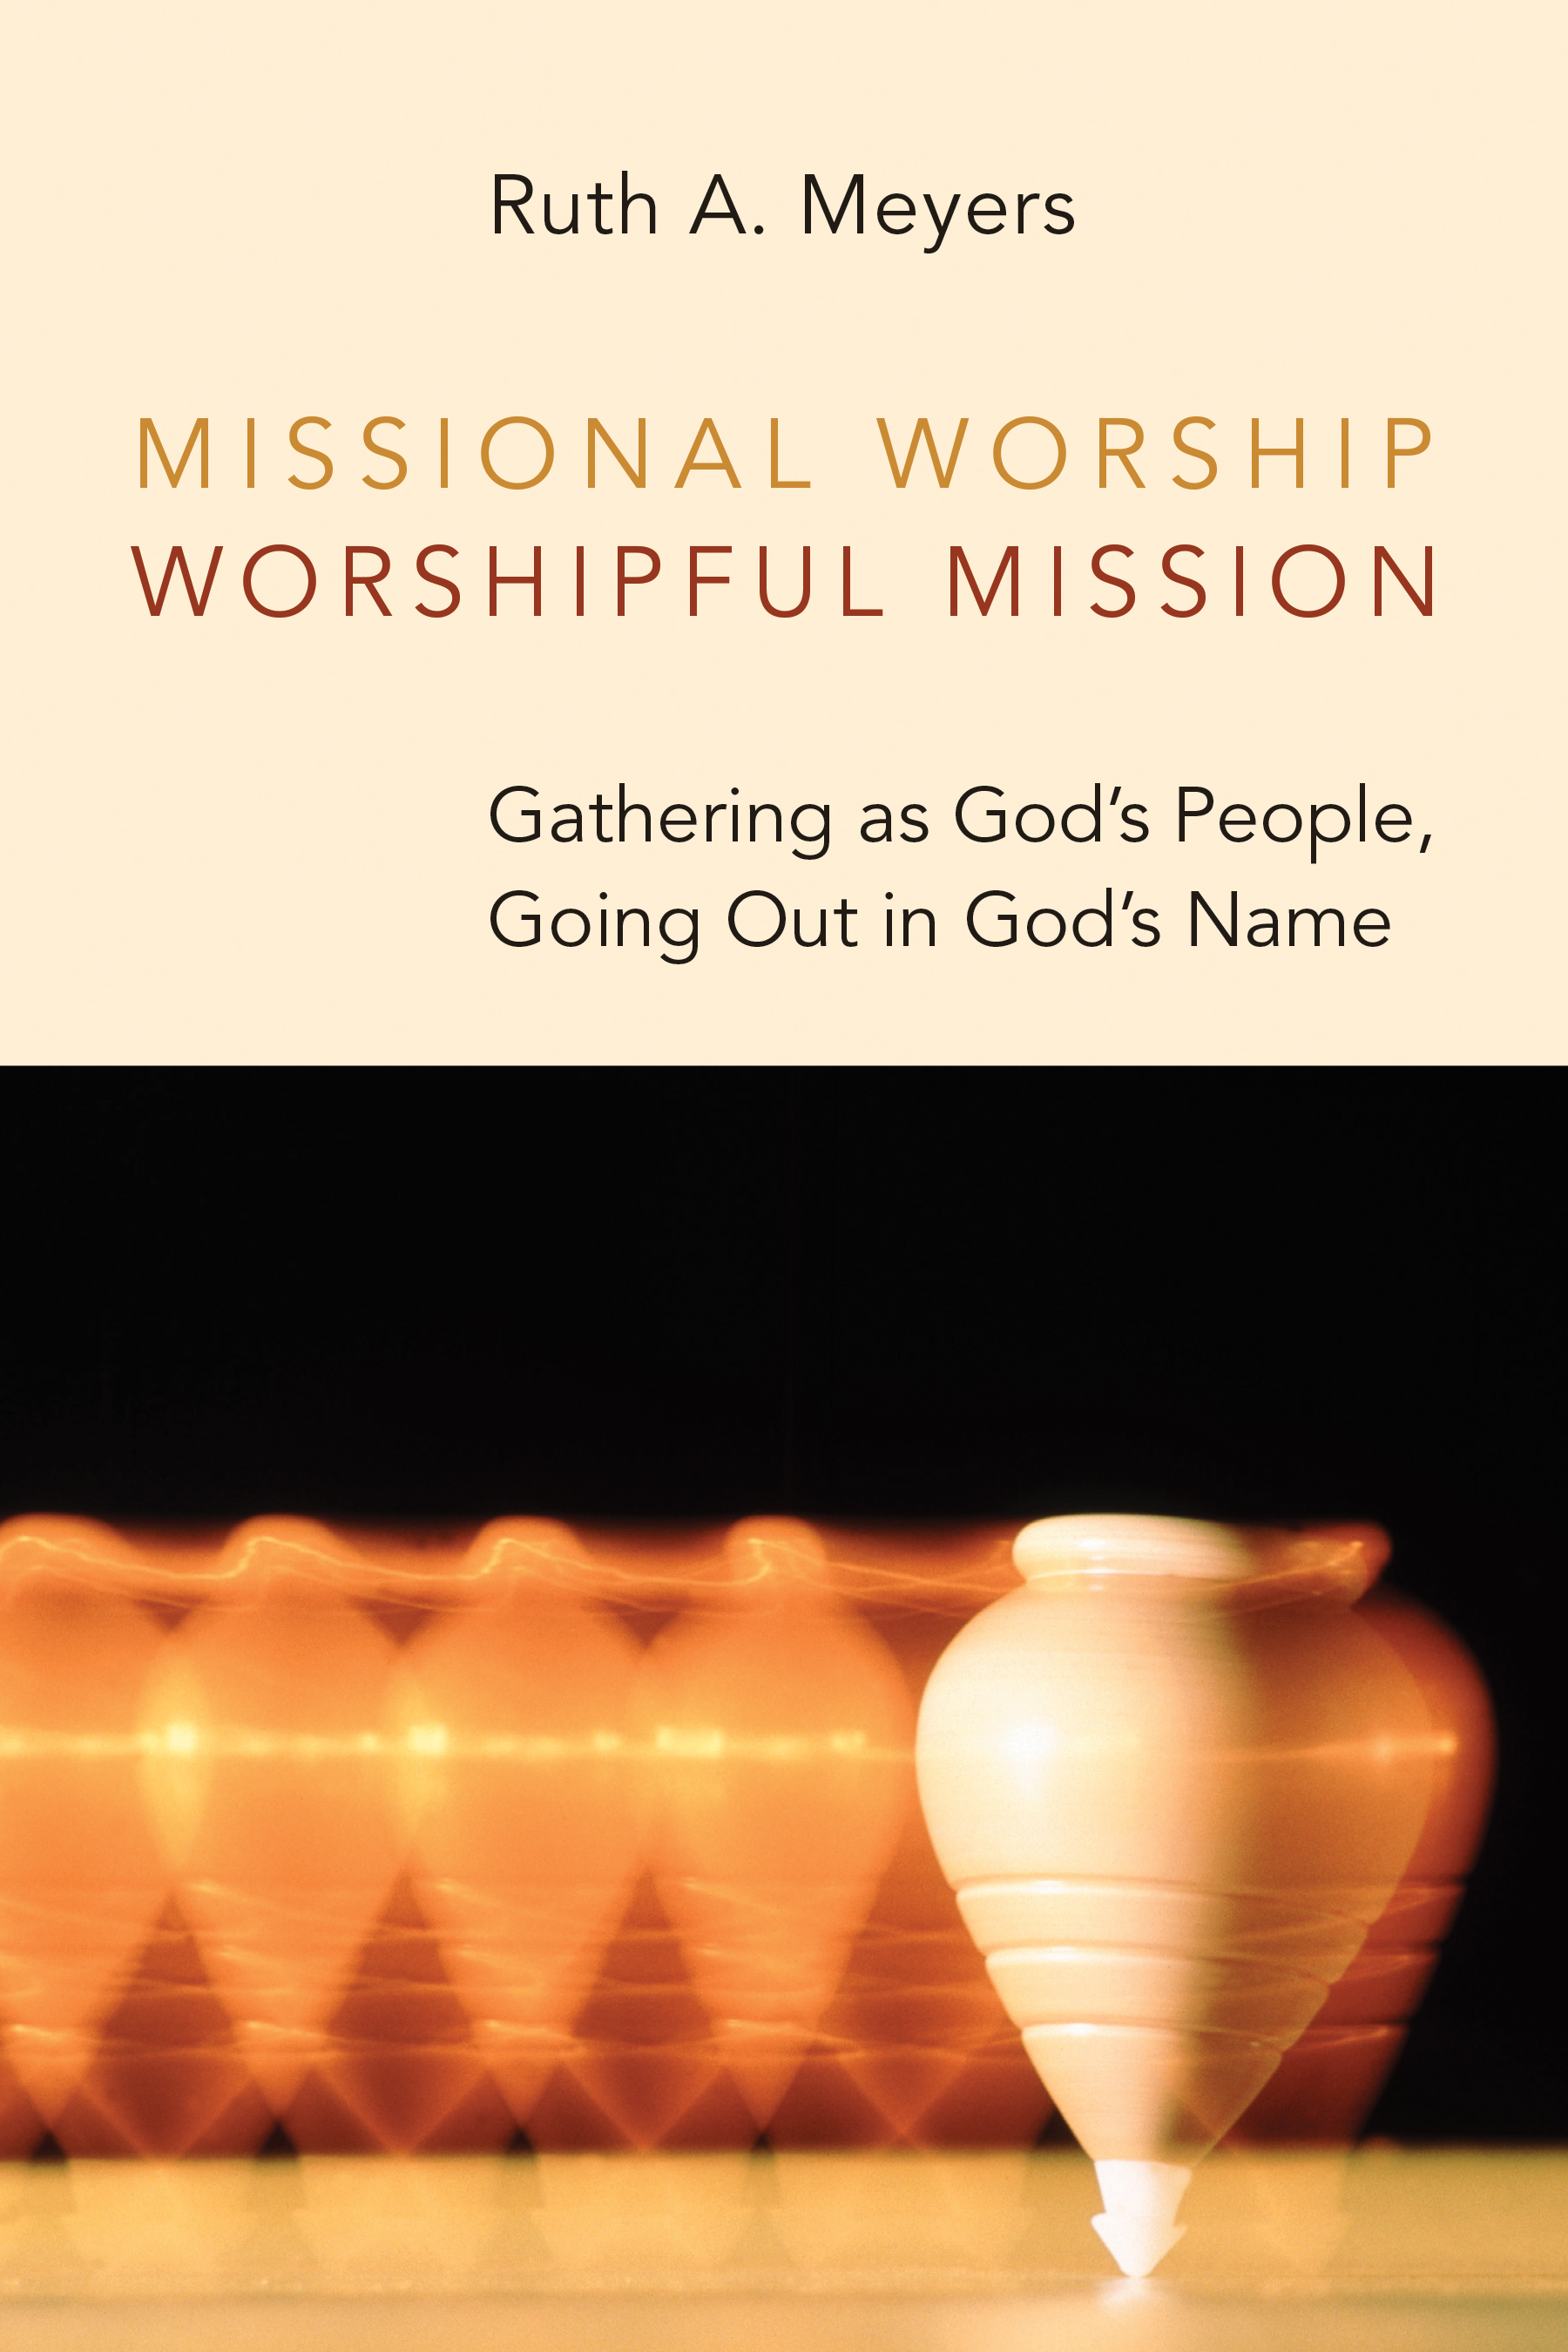 missional worship, worshipful mission - ruth a. meyers : eerdmans